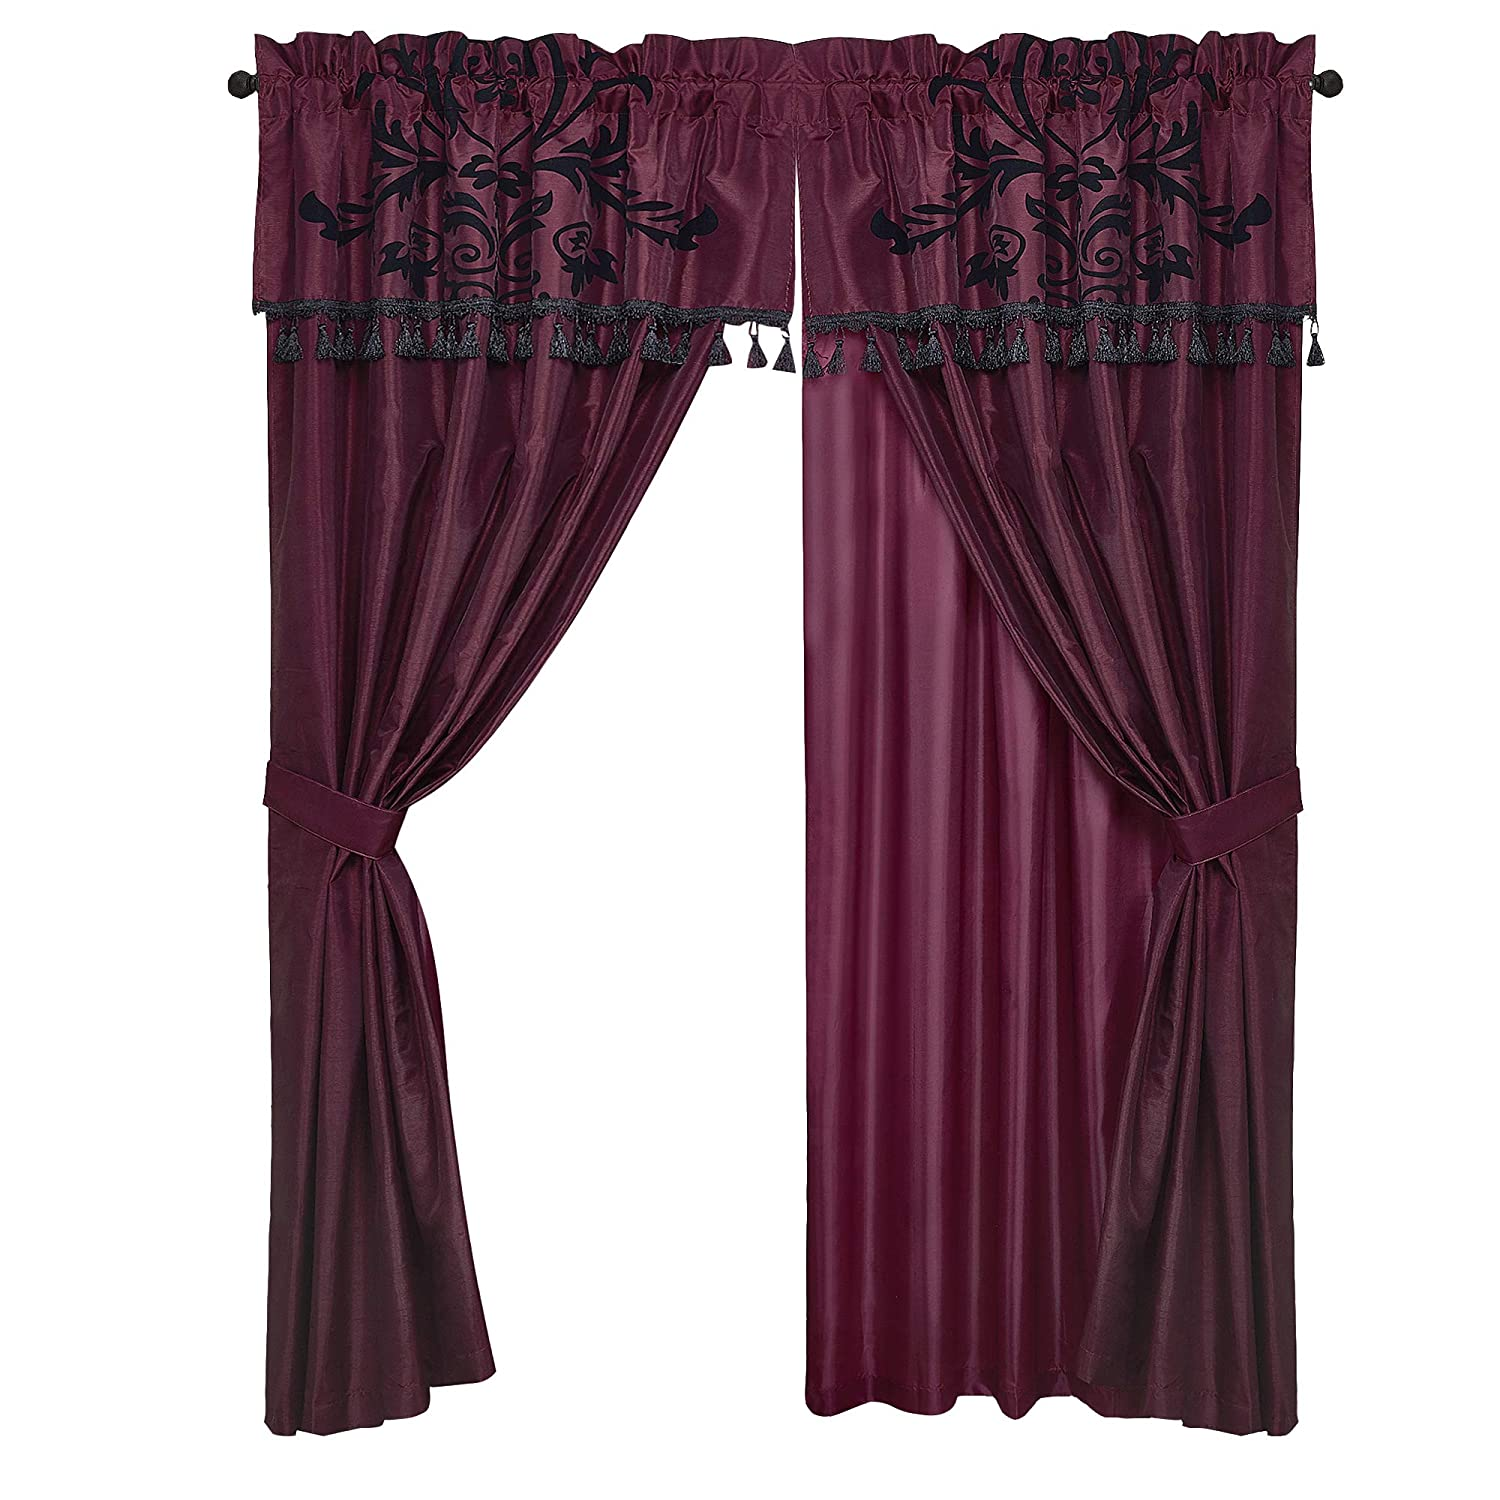 Violet//Black Chezmoi Collection 4-Piece Flocked Floral Faux Silk Window Curtain Set with Sheer Backing Valance